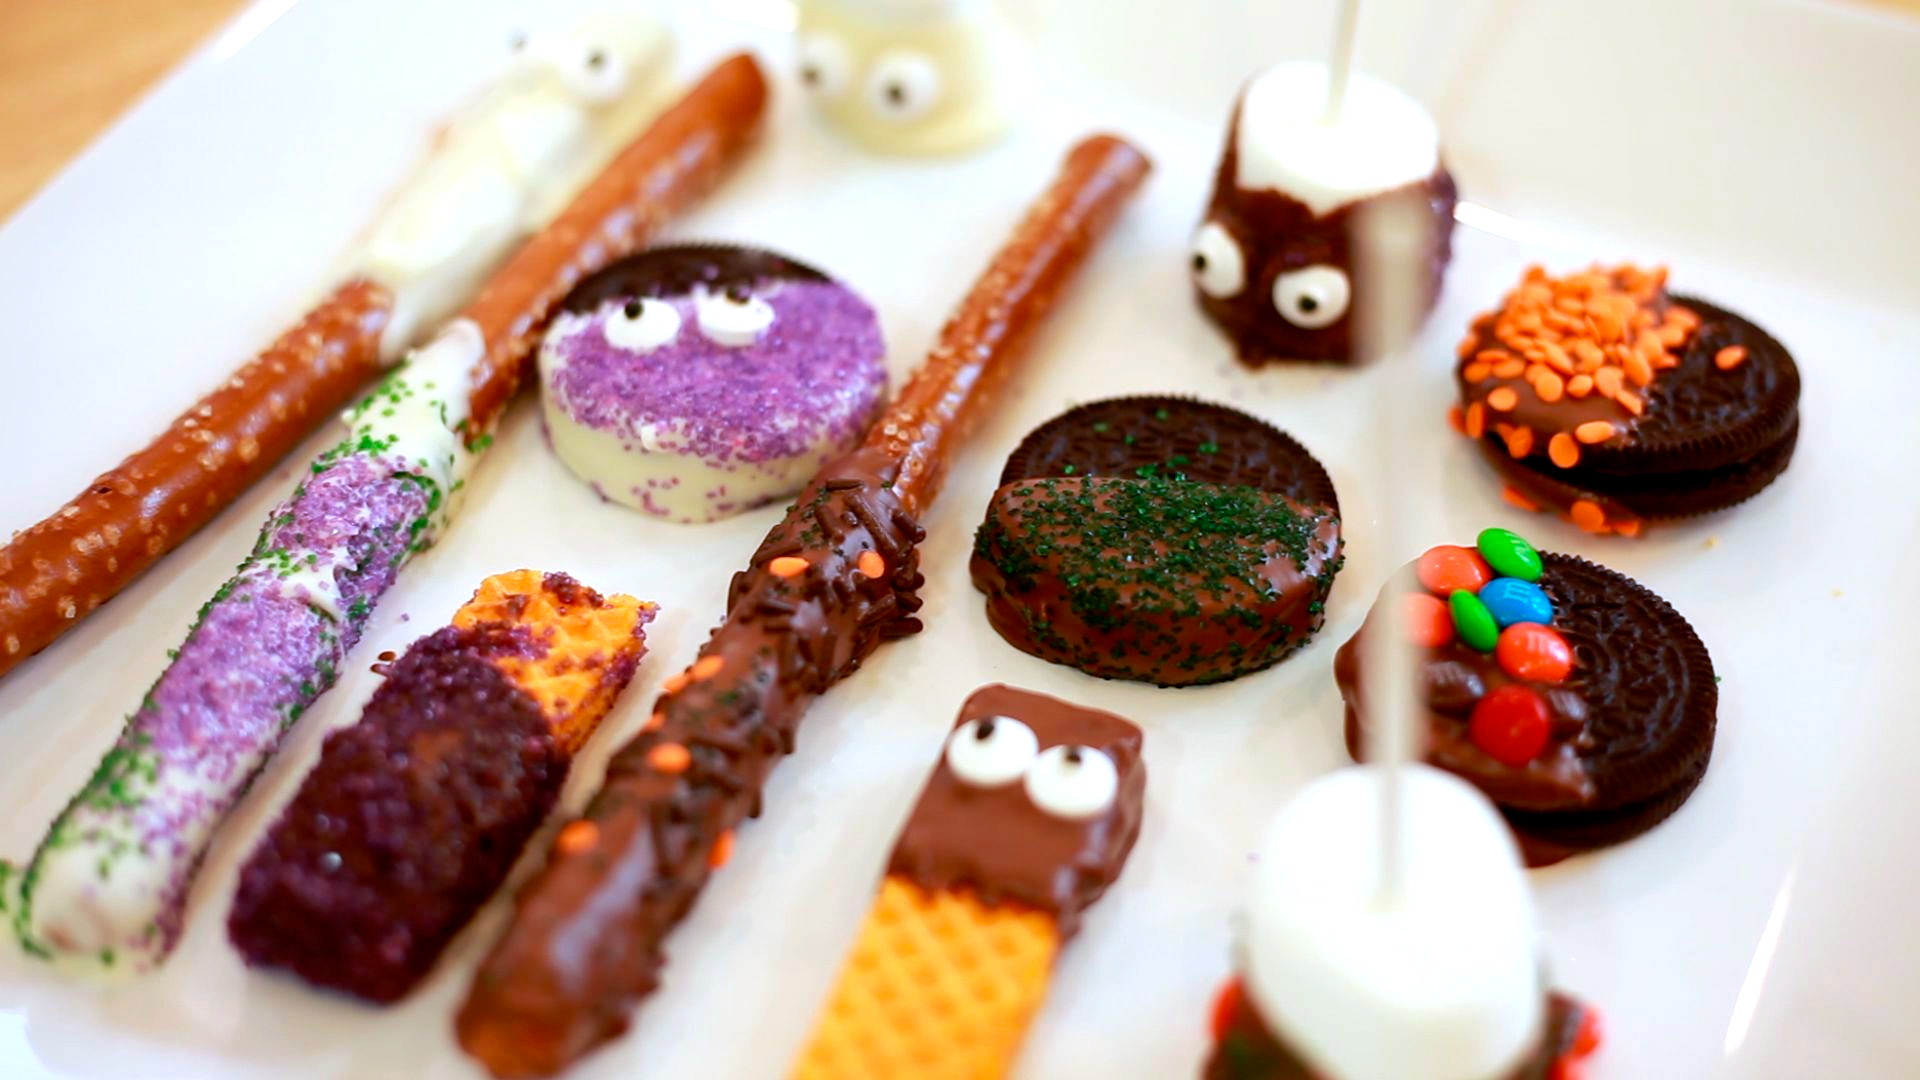 Pinterest Halloween Desserts  5 Pinterest Desserts Tested Halloween Edition